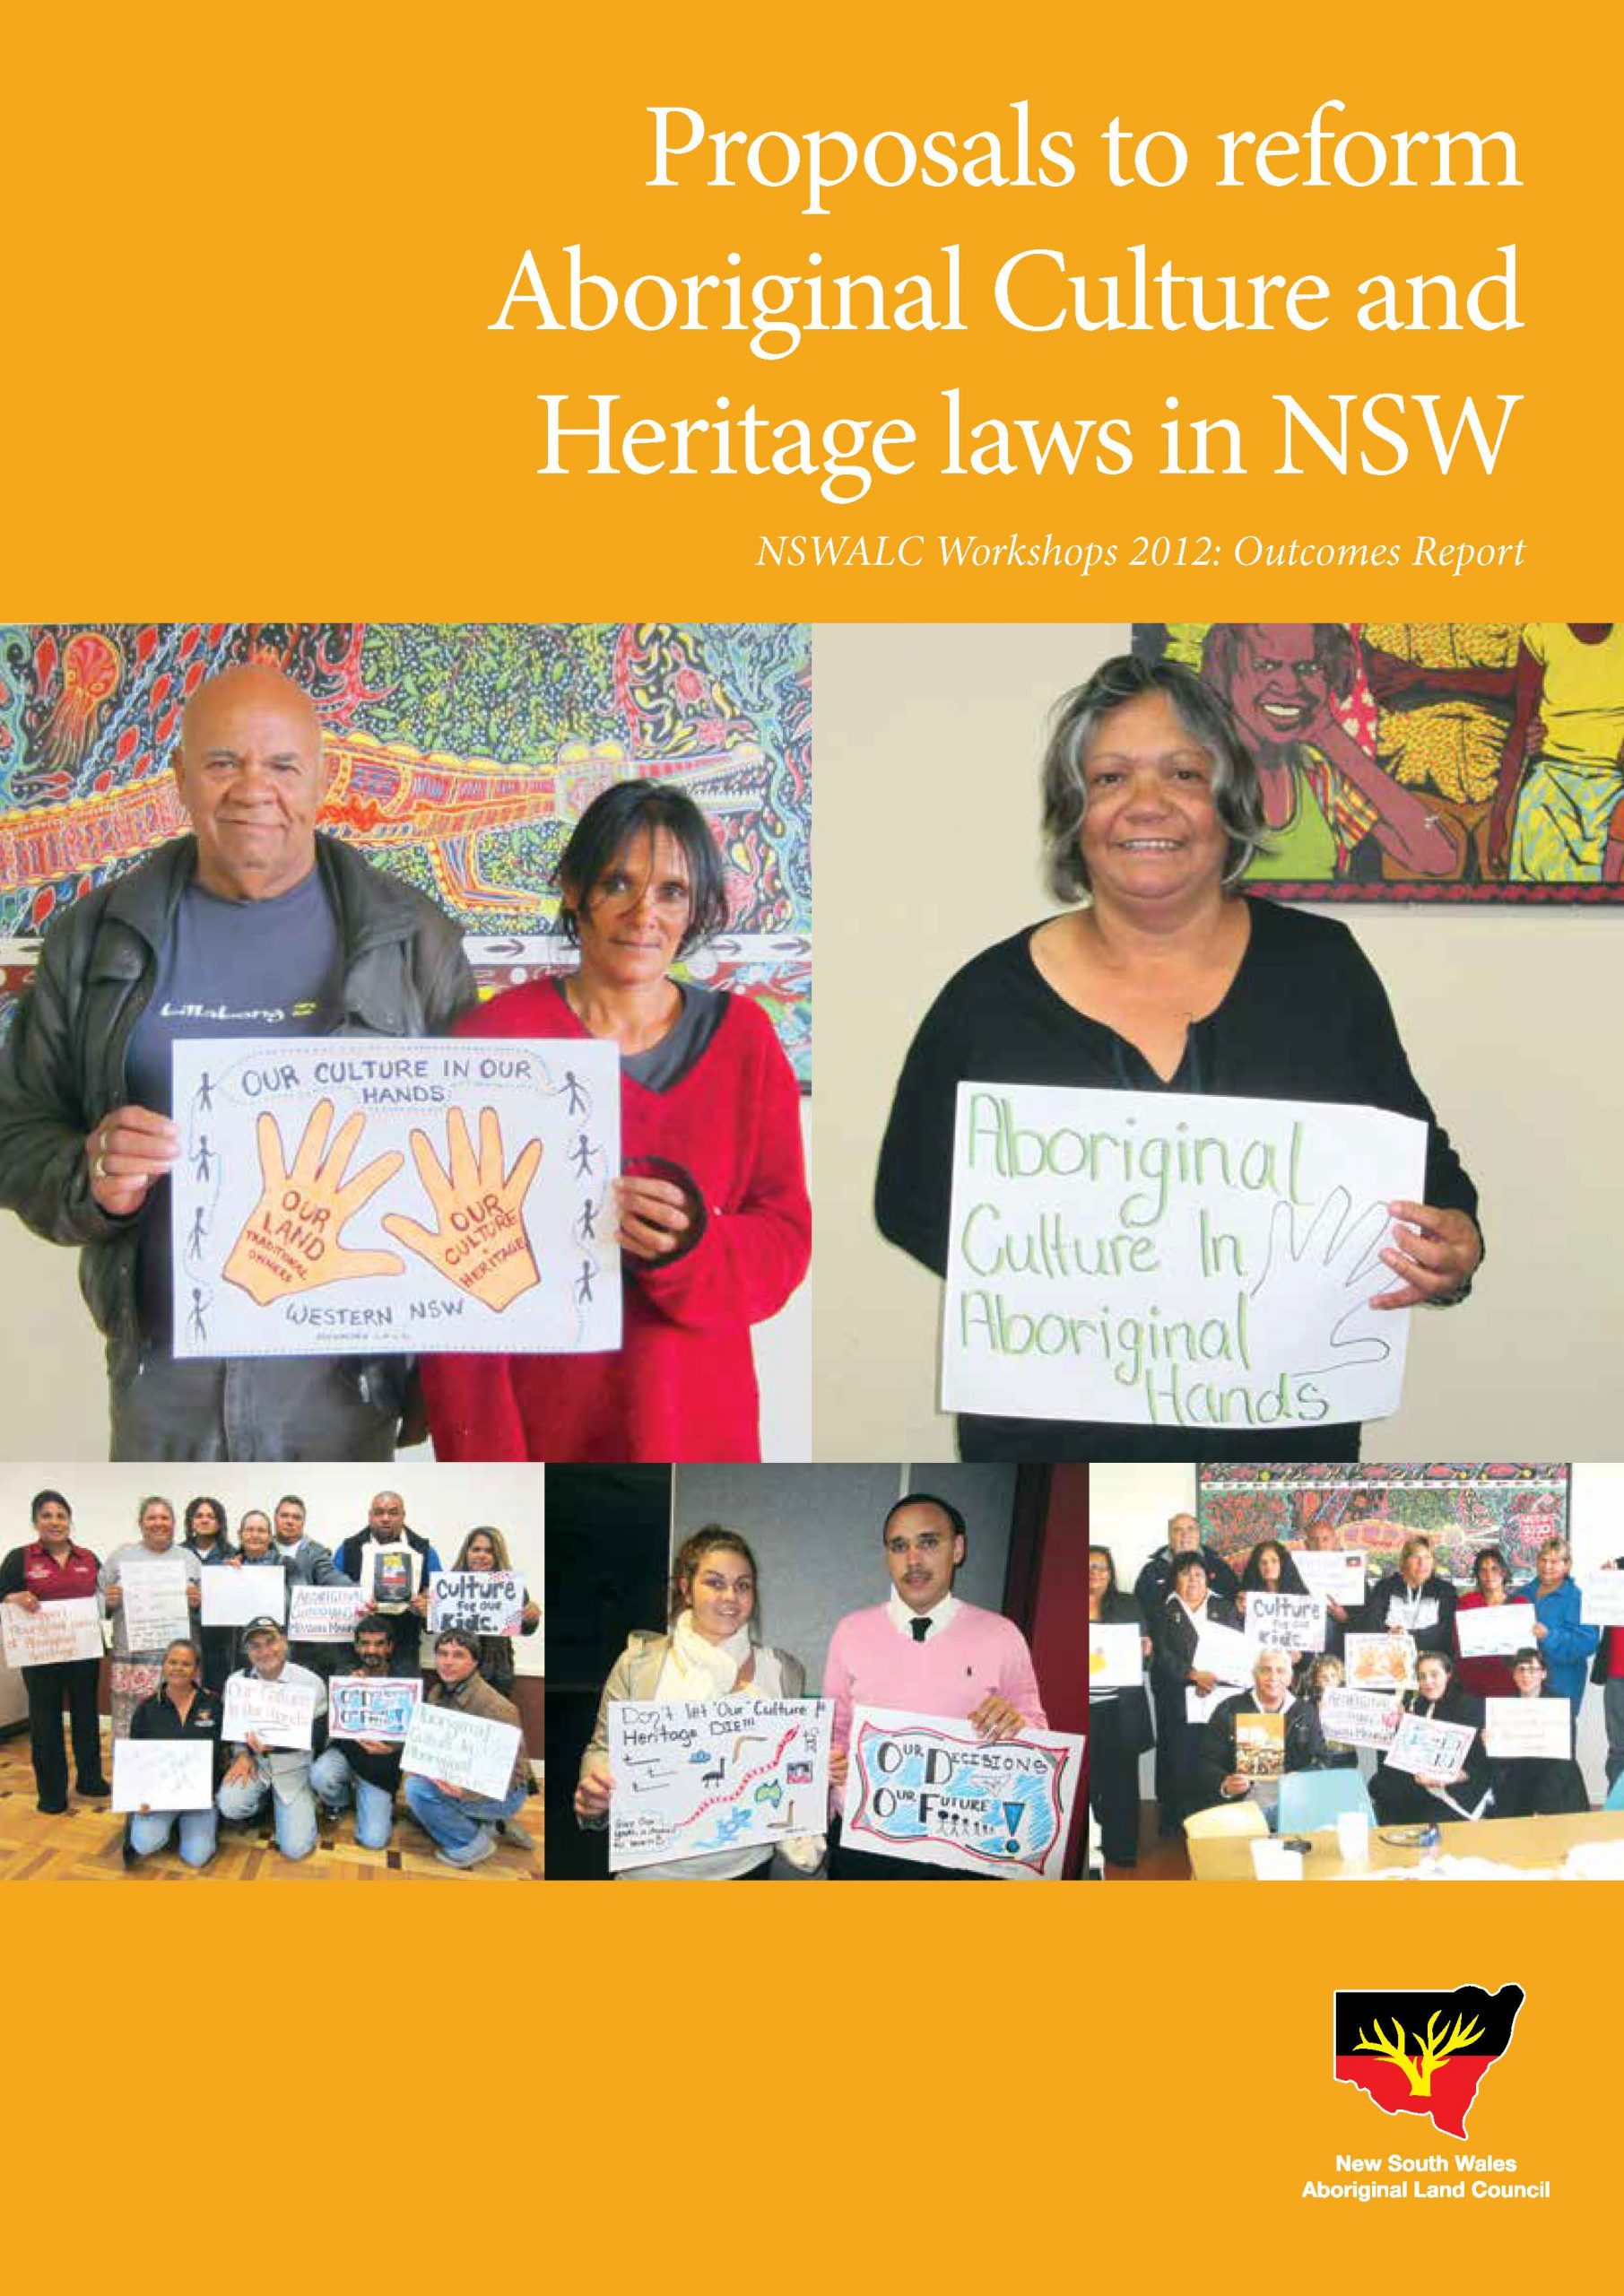 Aboriginal Culture and Heritage Reforms Proposal